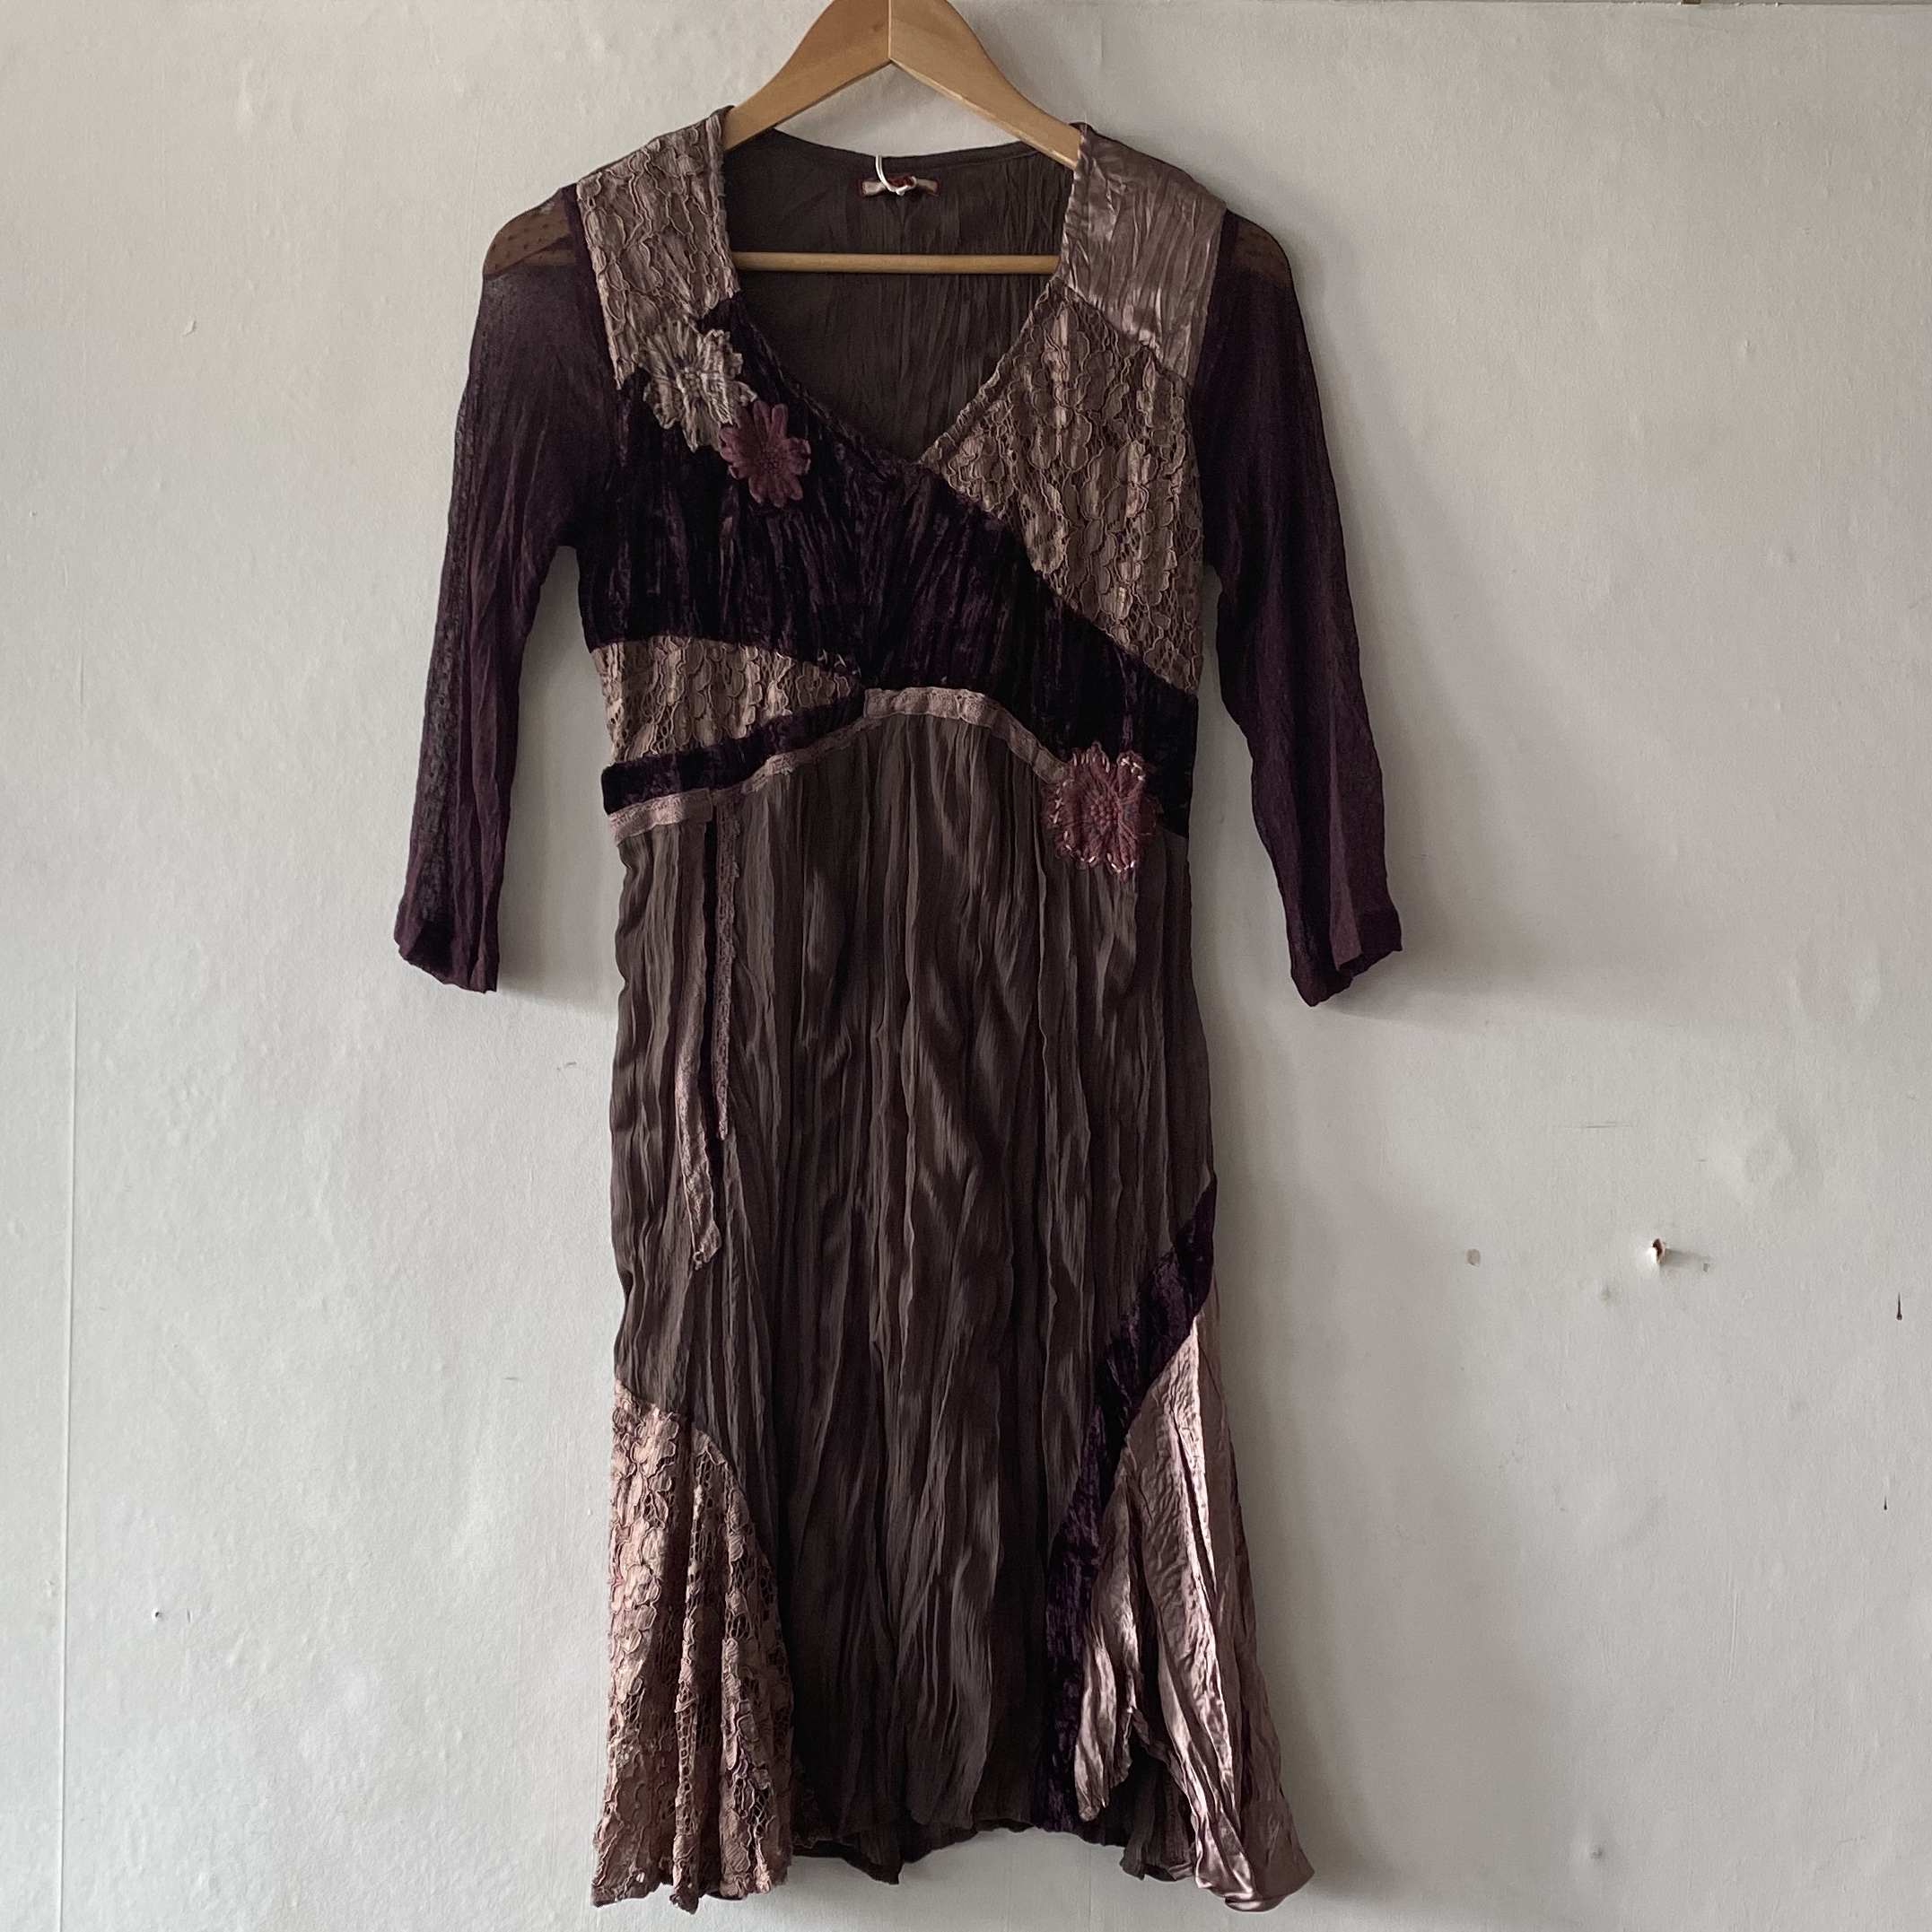 Cool Crinkle Dress (Was £45.00)